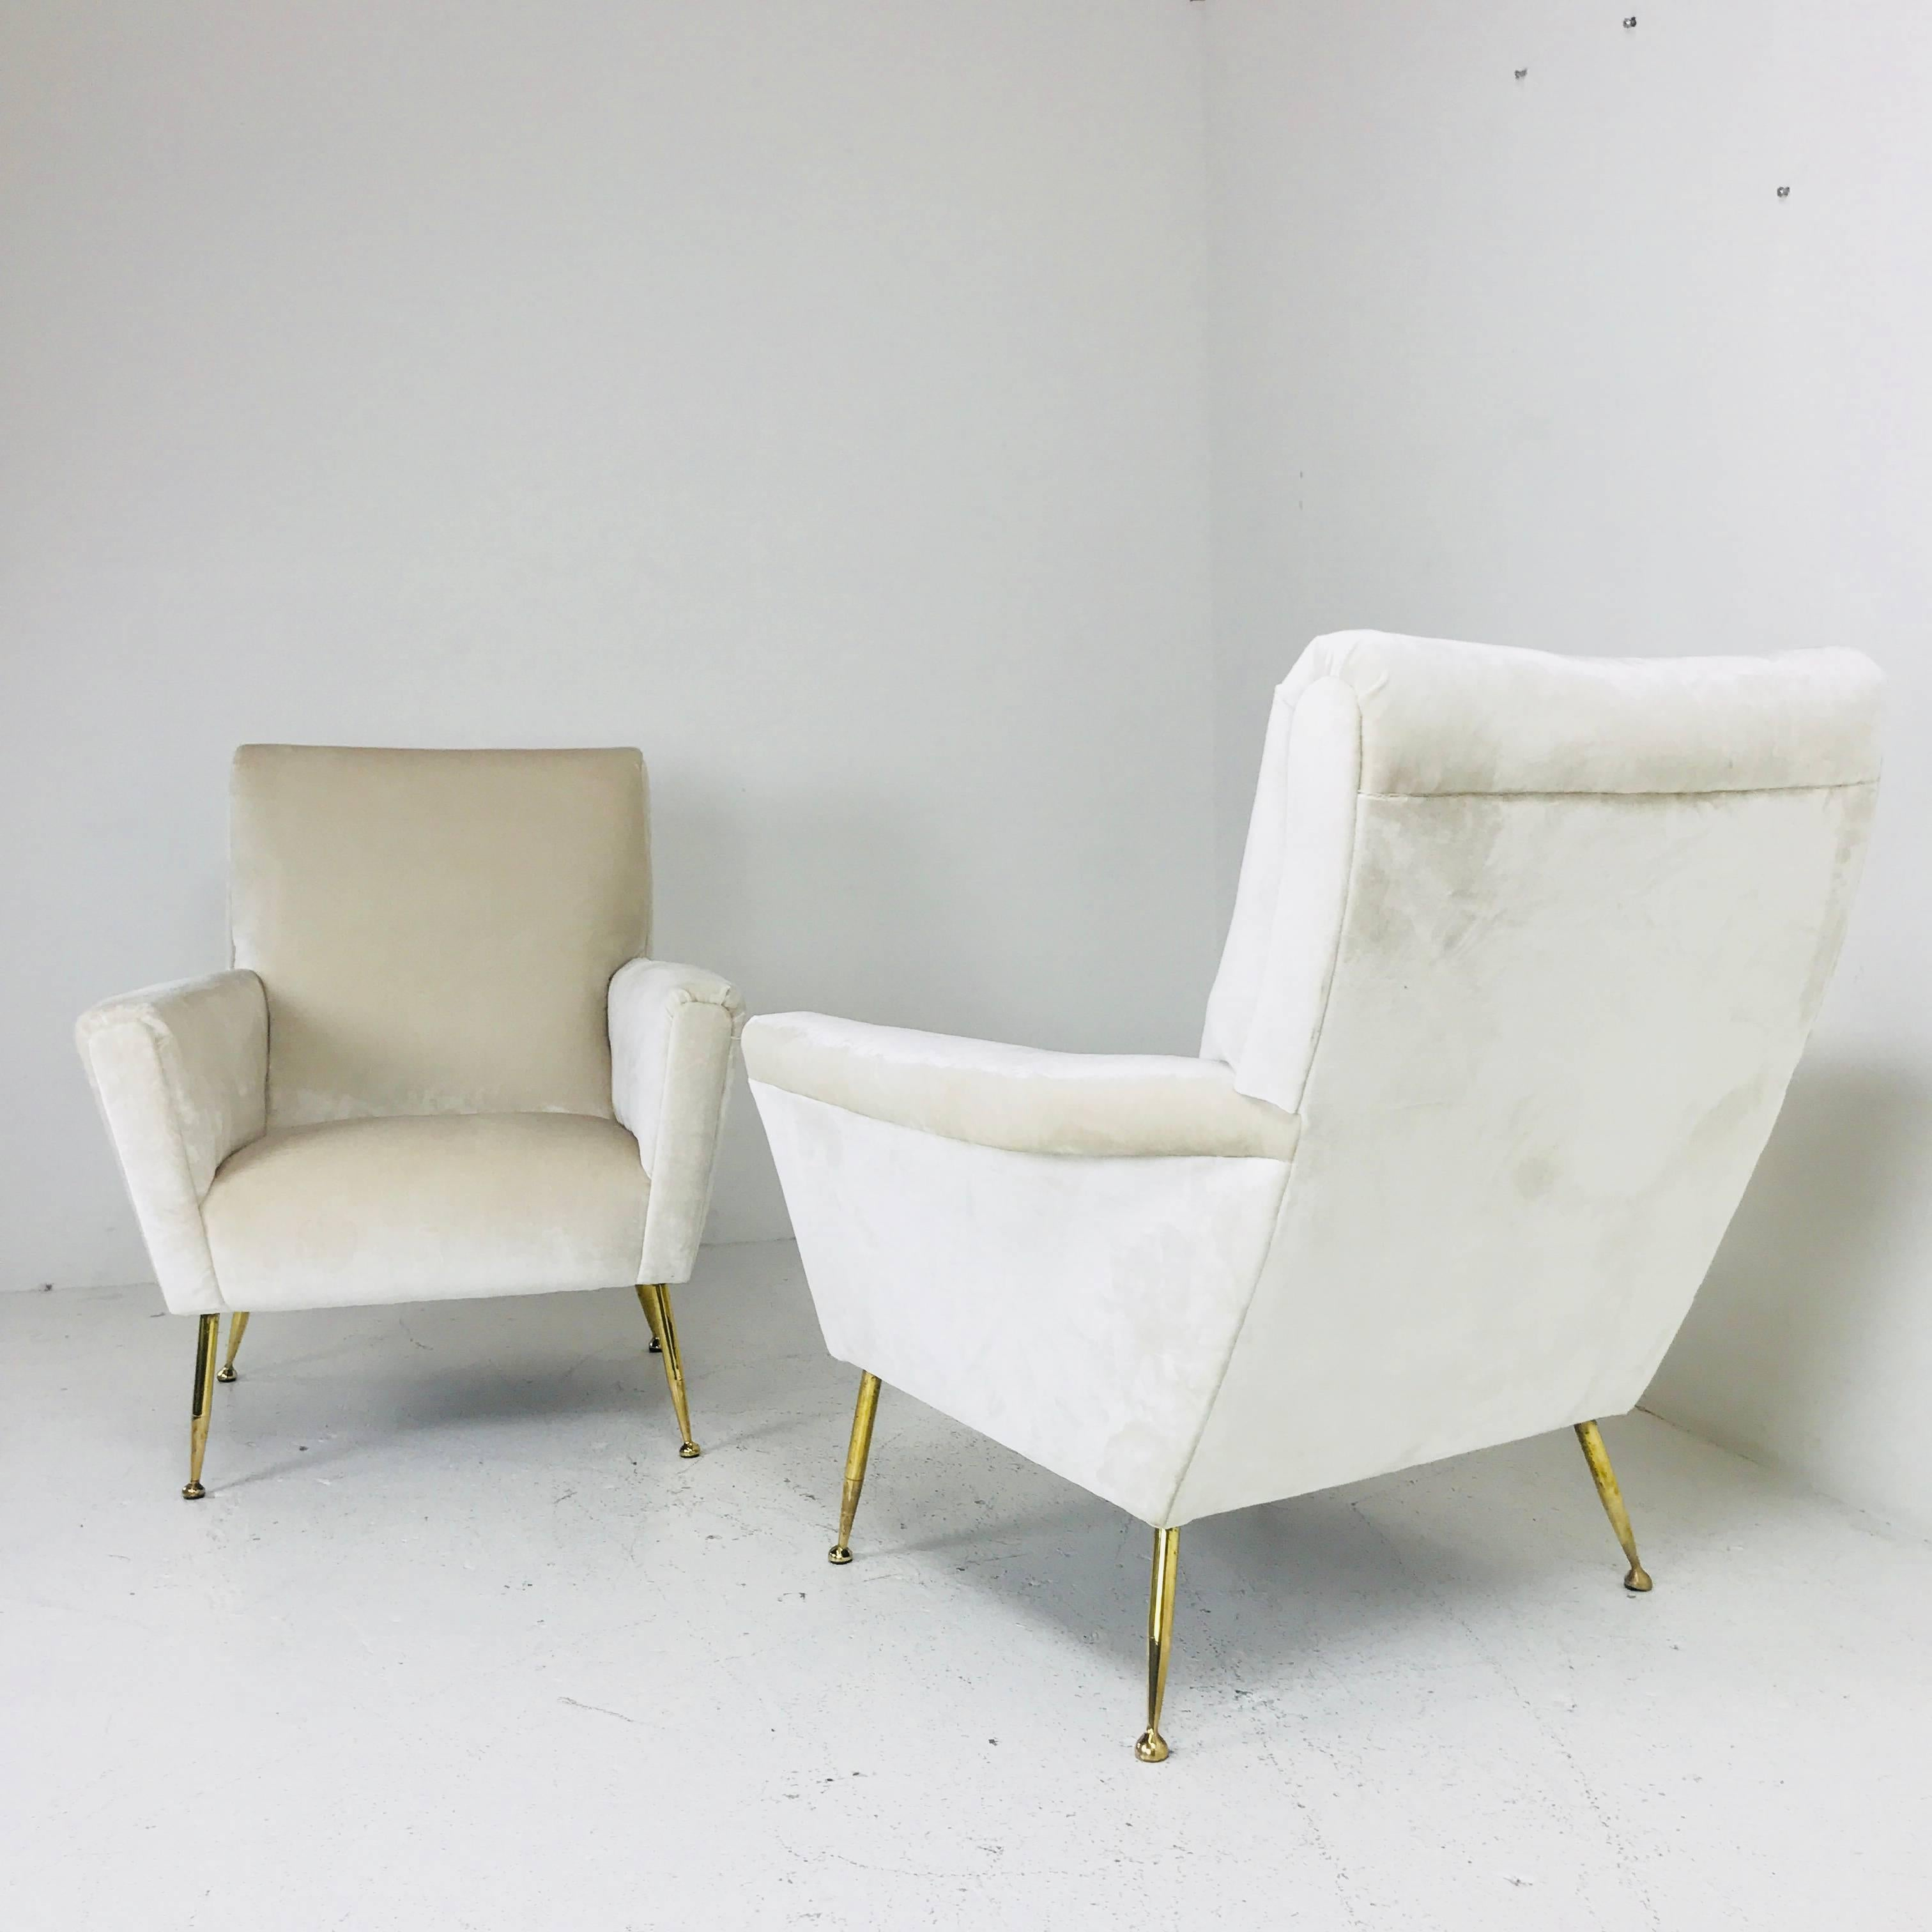 Pair Of Vintage Italian Lounge Chairs With Brass Legs In Good Condition For  Sale In Dallas